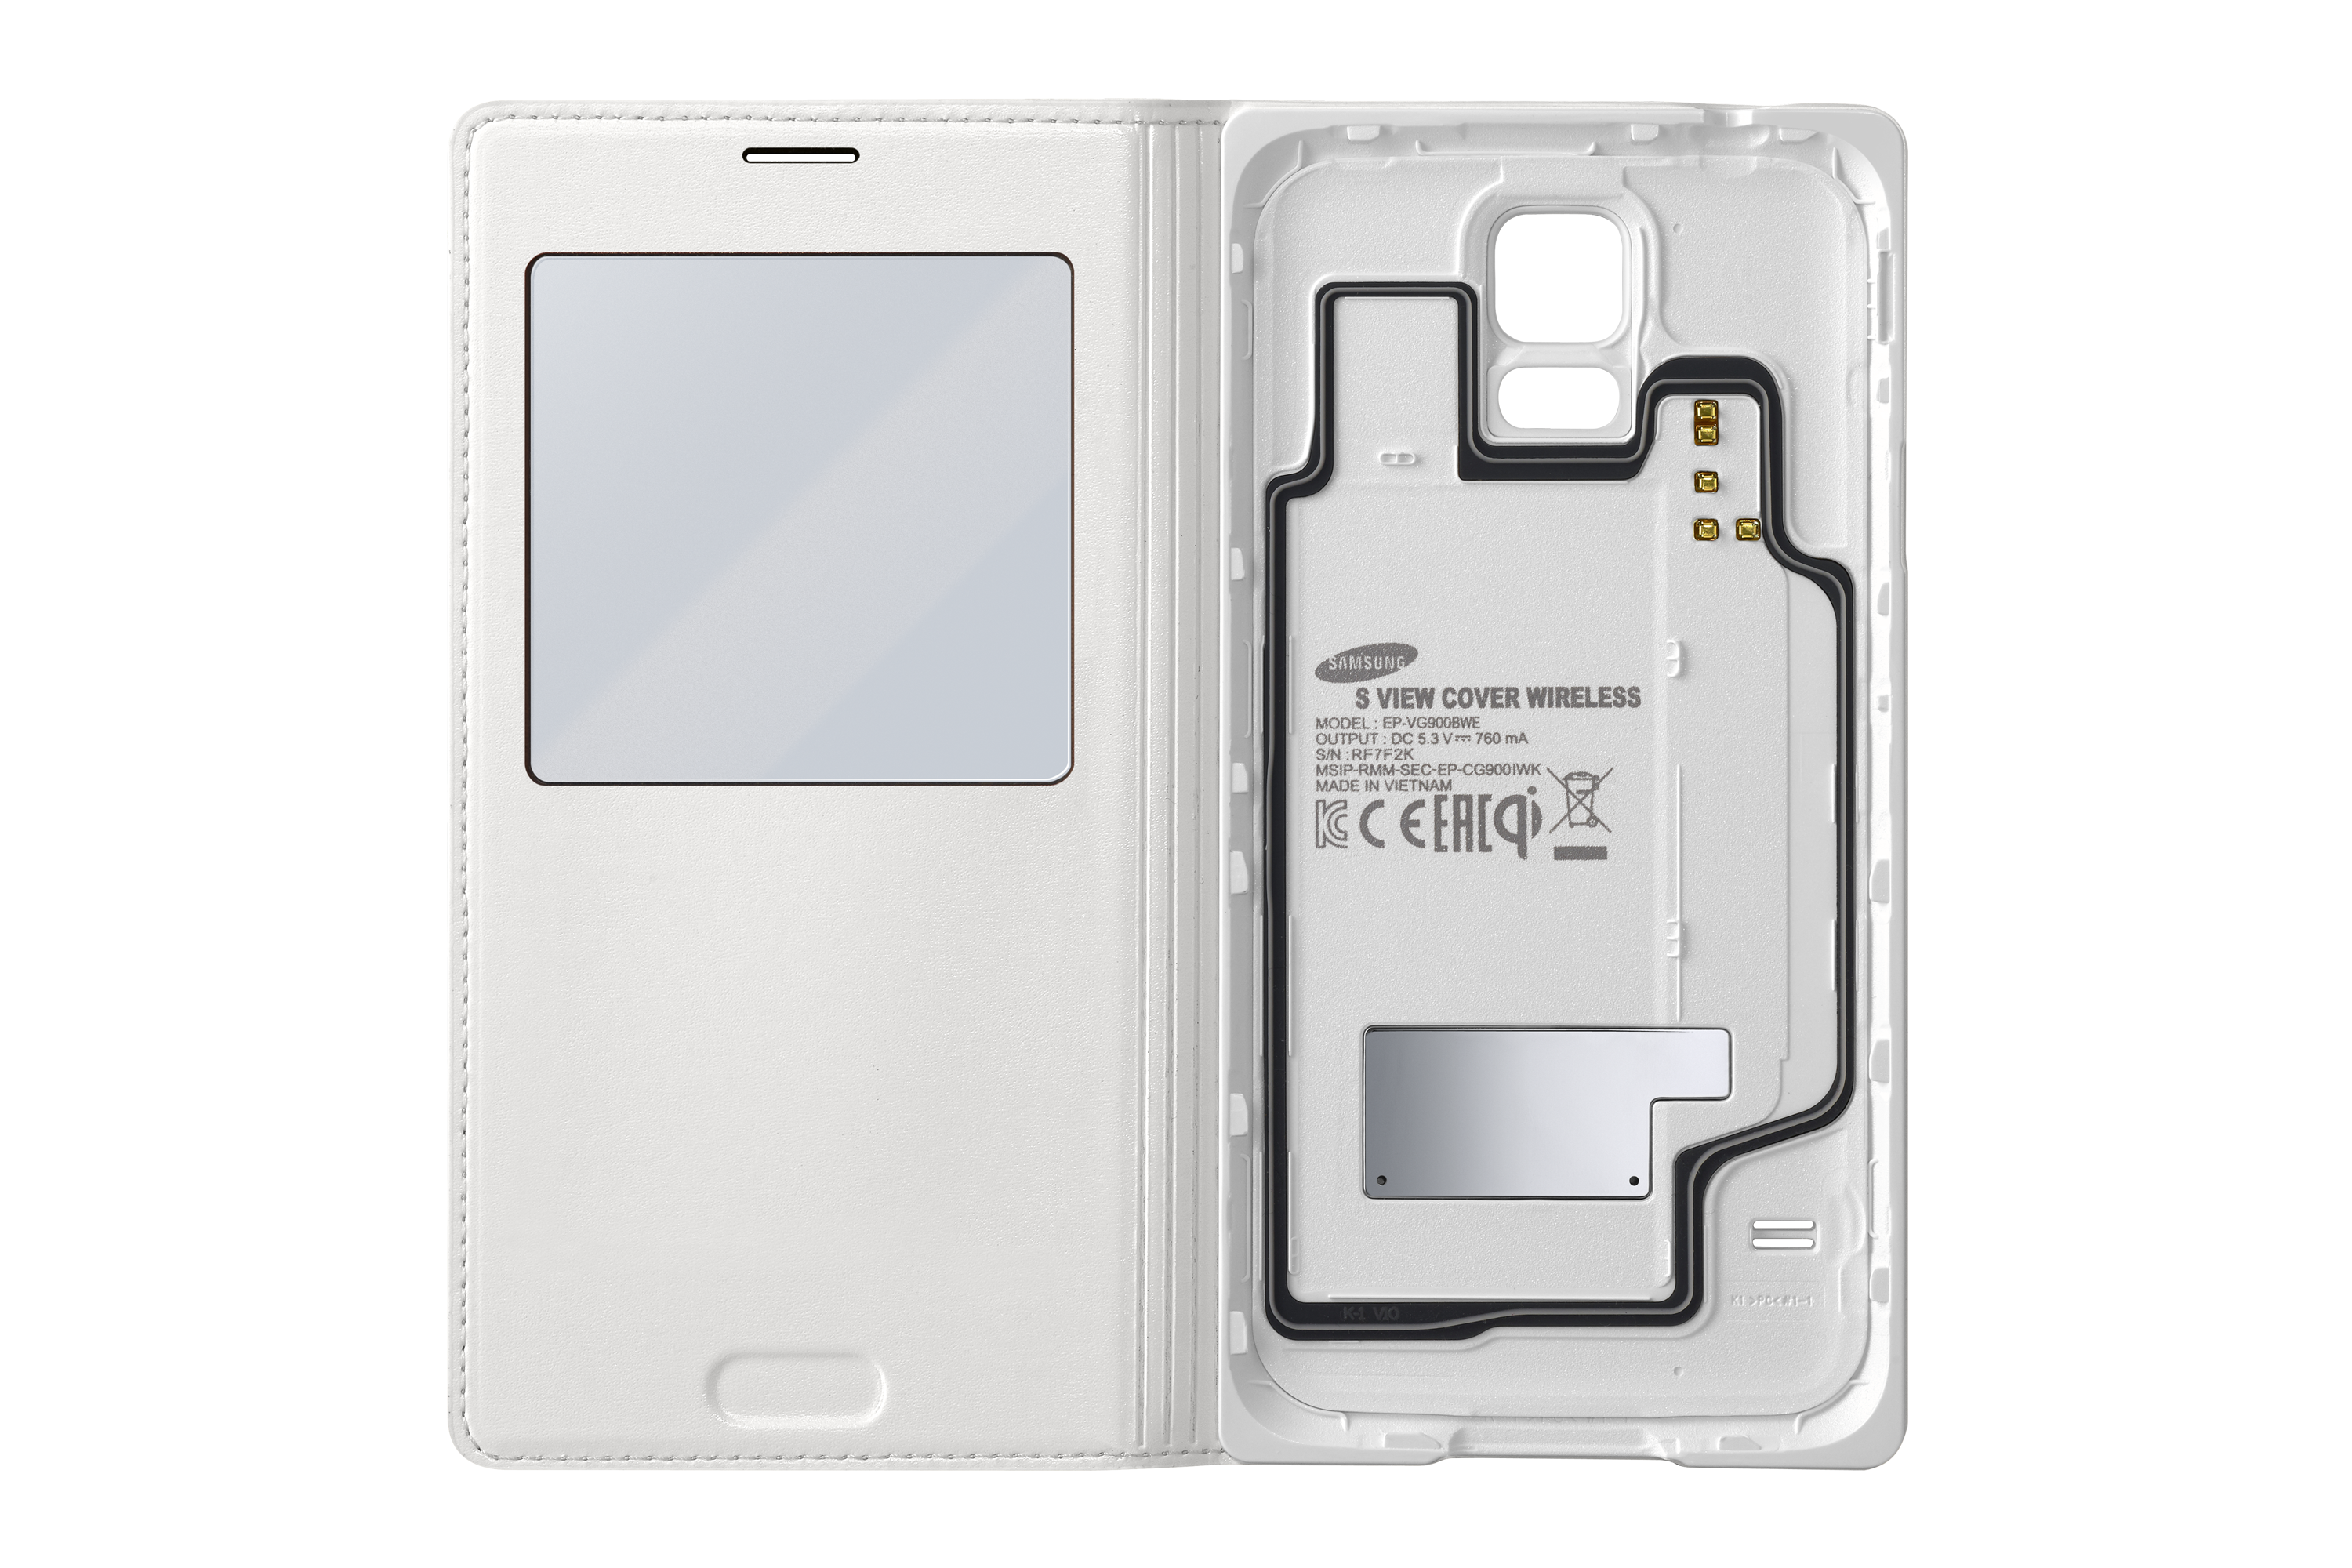 Galaxy S5 S View Wireless Charging Cover